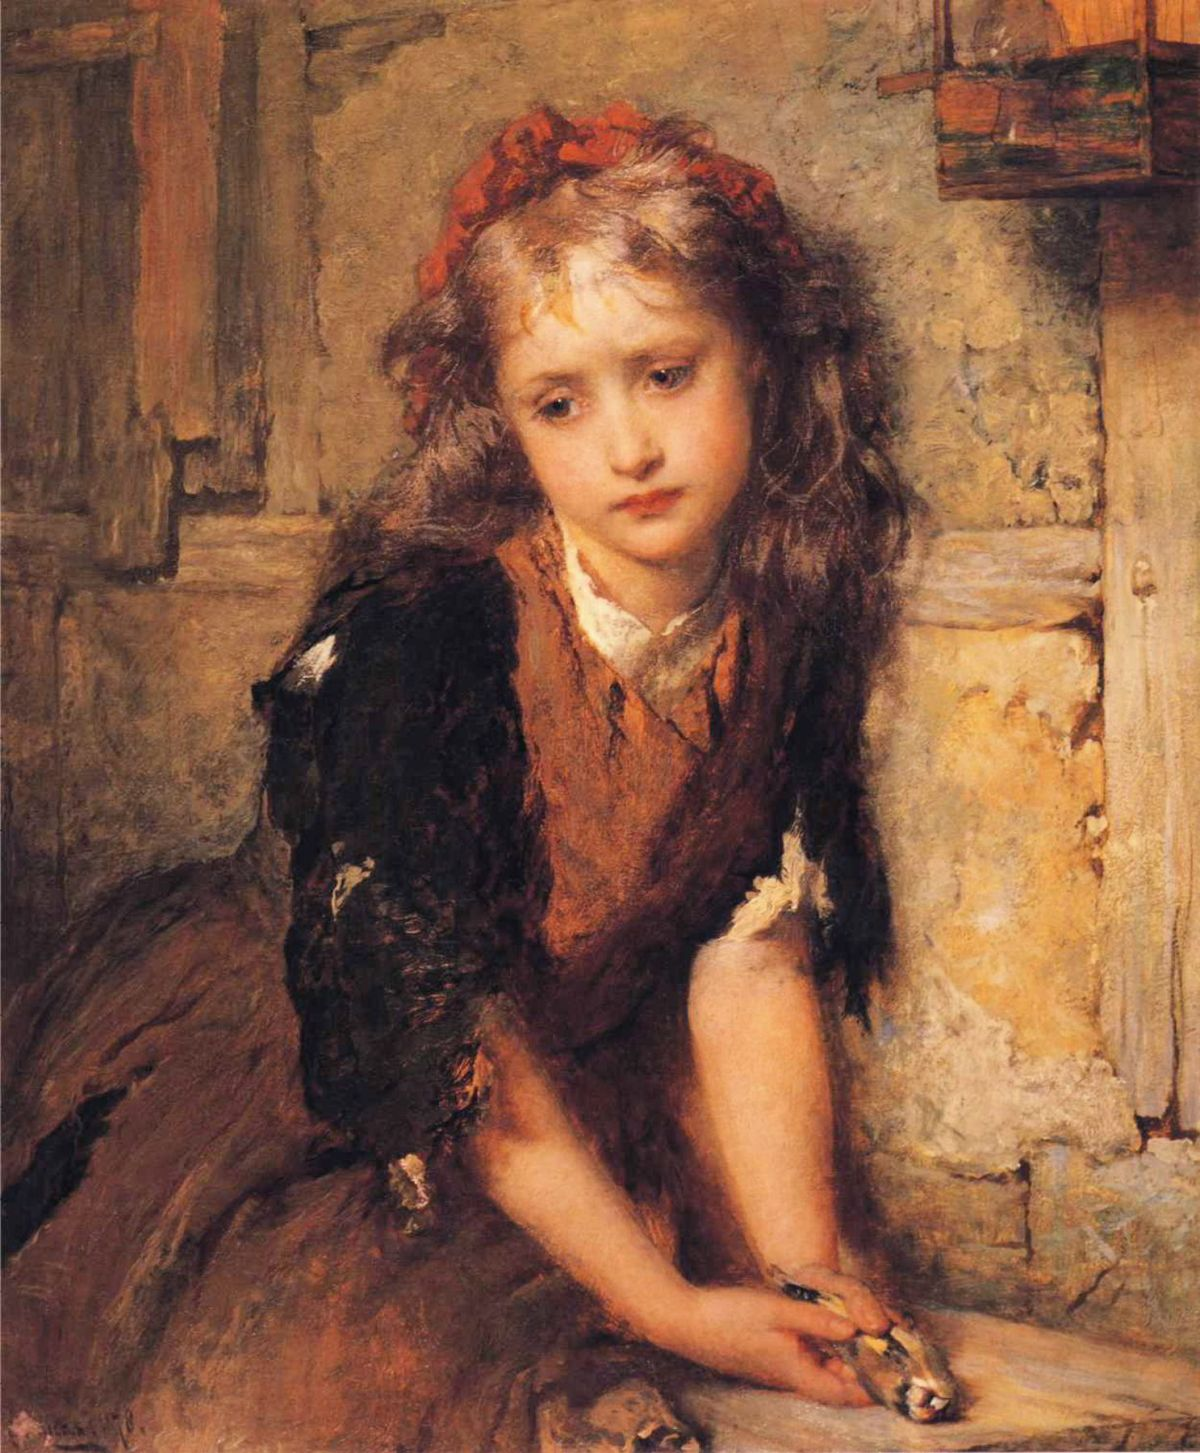 The Dead Goldfinch by George Elgar Hicks